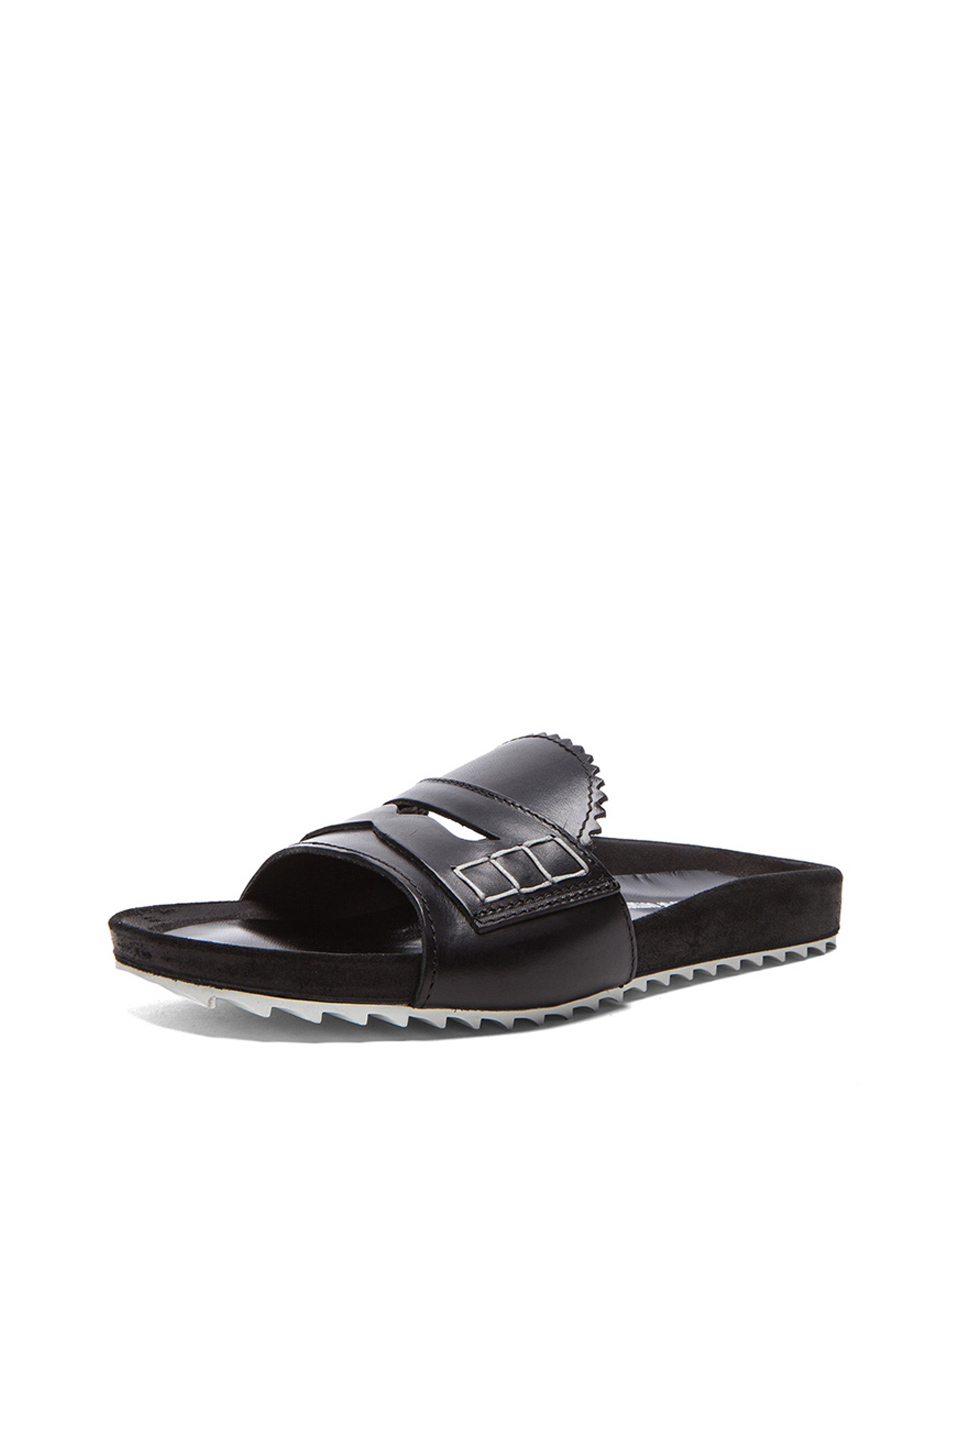 BAND OF OUTSIDERS Leather Sandal aXq5hp0qg